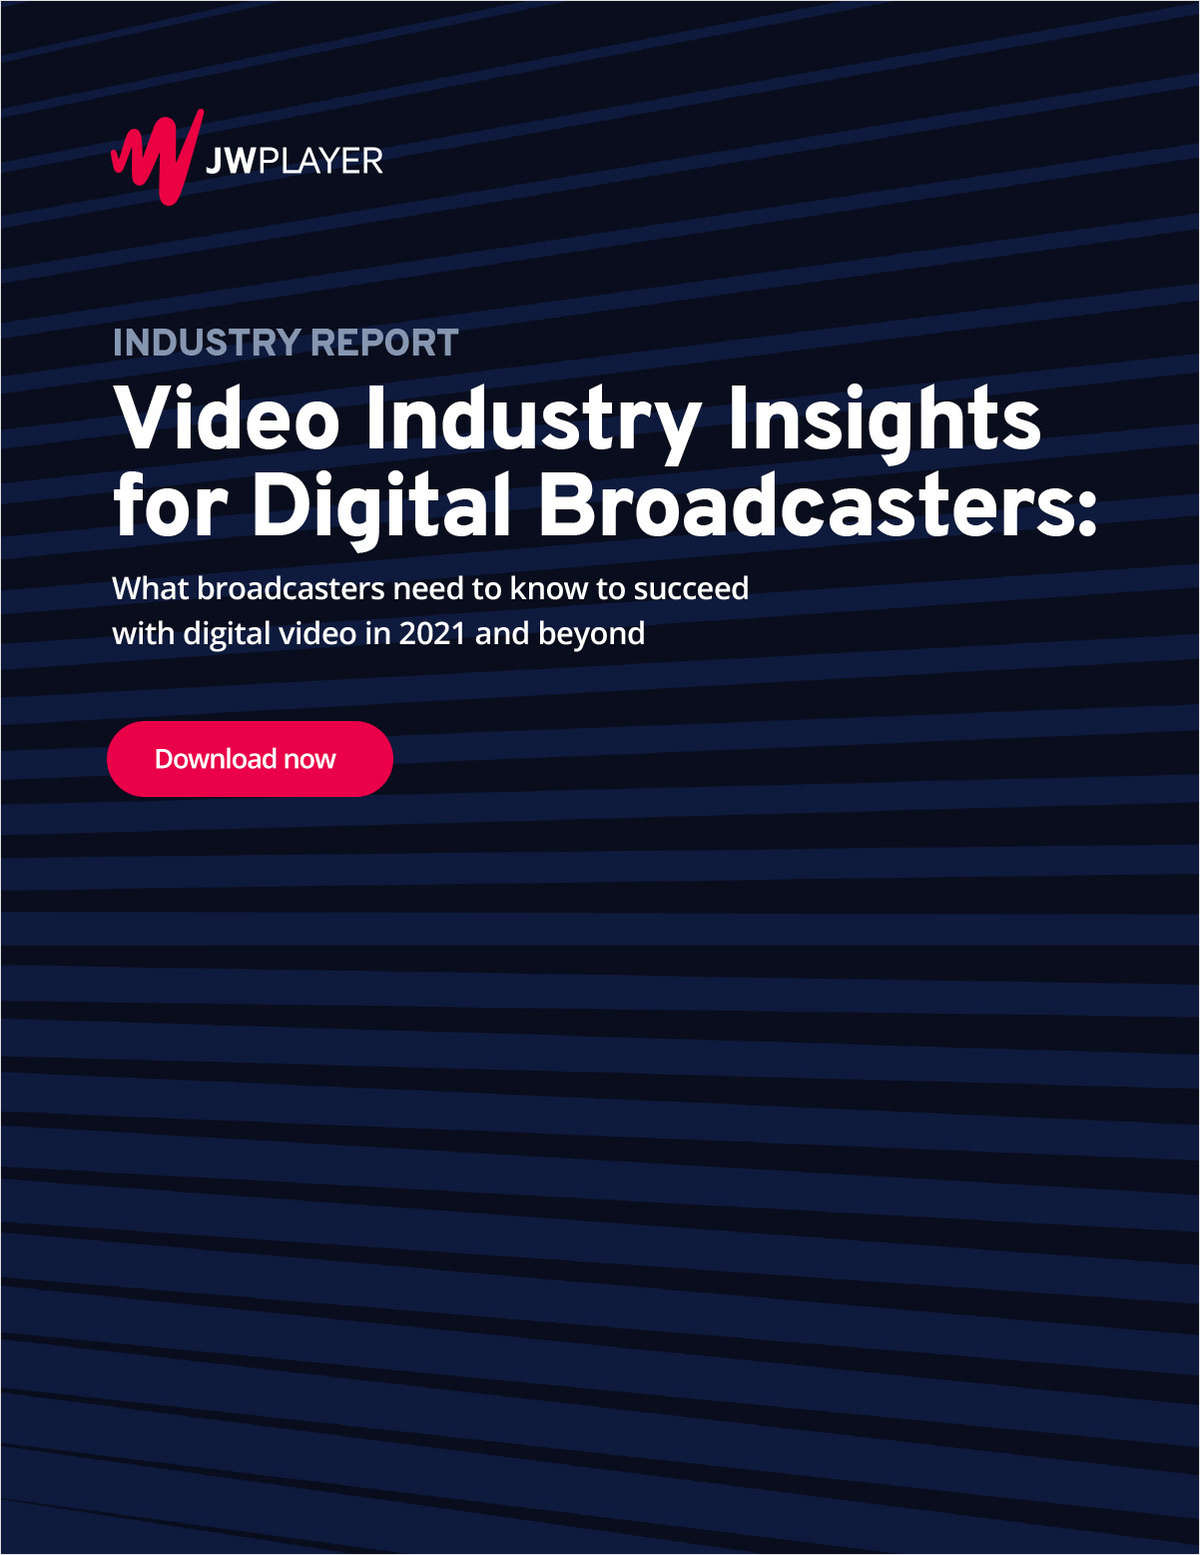 Video Industry Insights for Digital Broadcasters: Reach New Audiences on New Screens